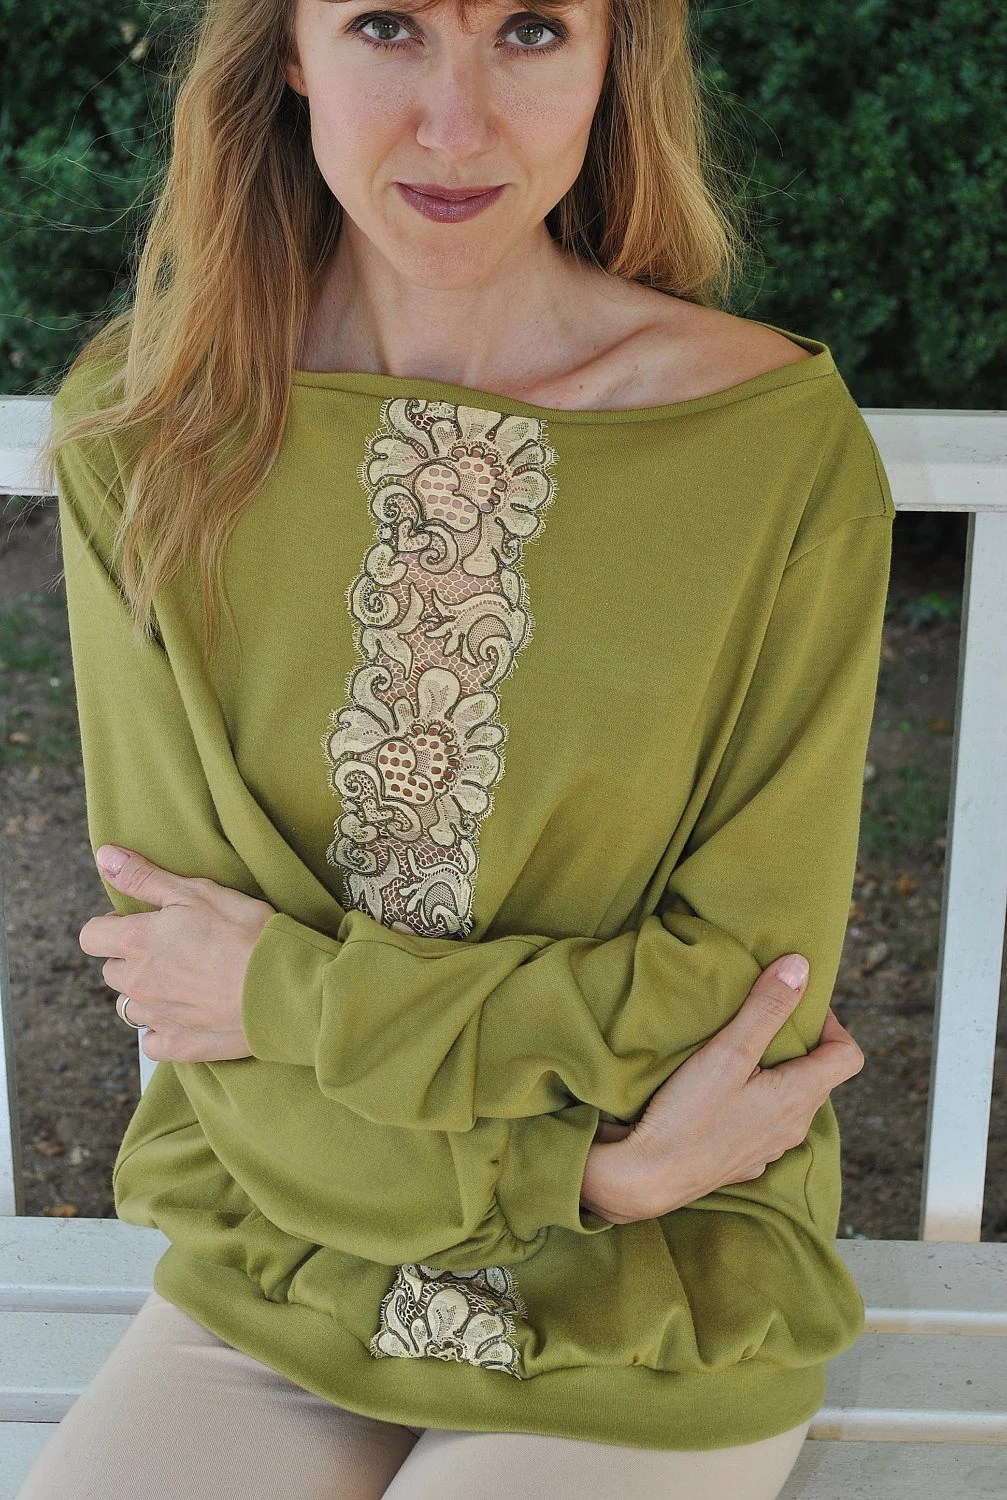 Olive green cotton shirt with vintage lace insert/ Olive and beige/ Bohemian style/ Modern boho/ rusteam ccteam tt team - marinaasta